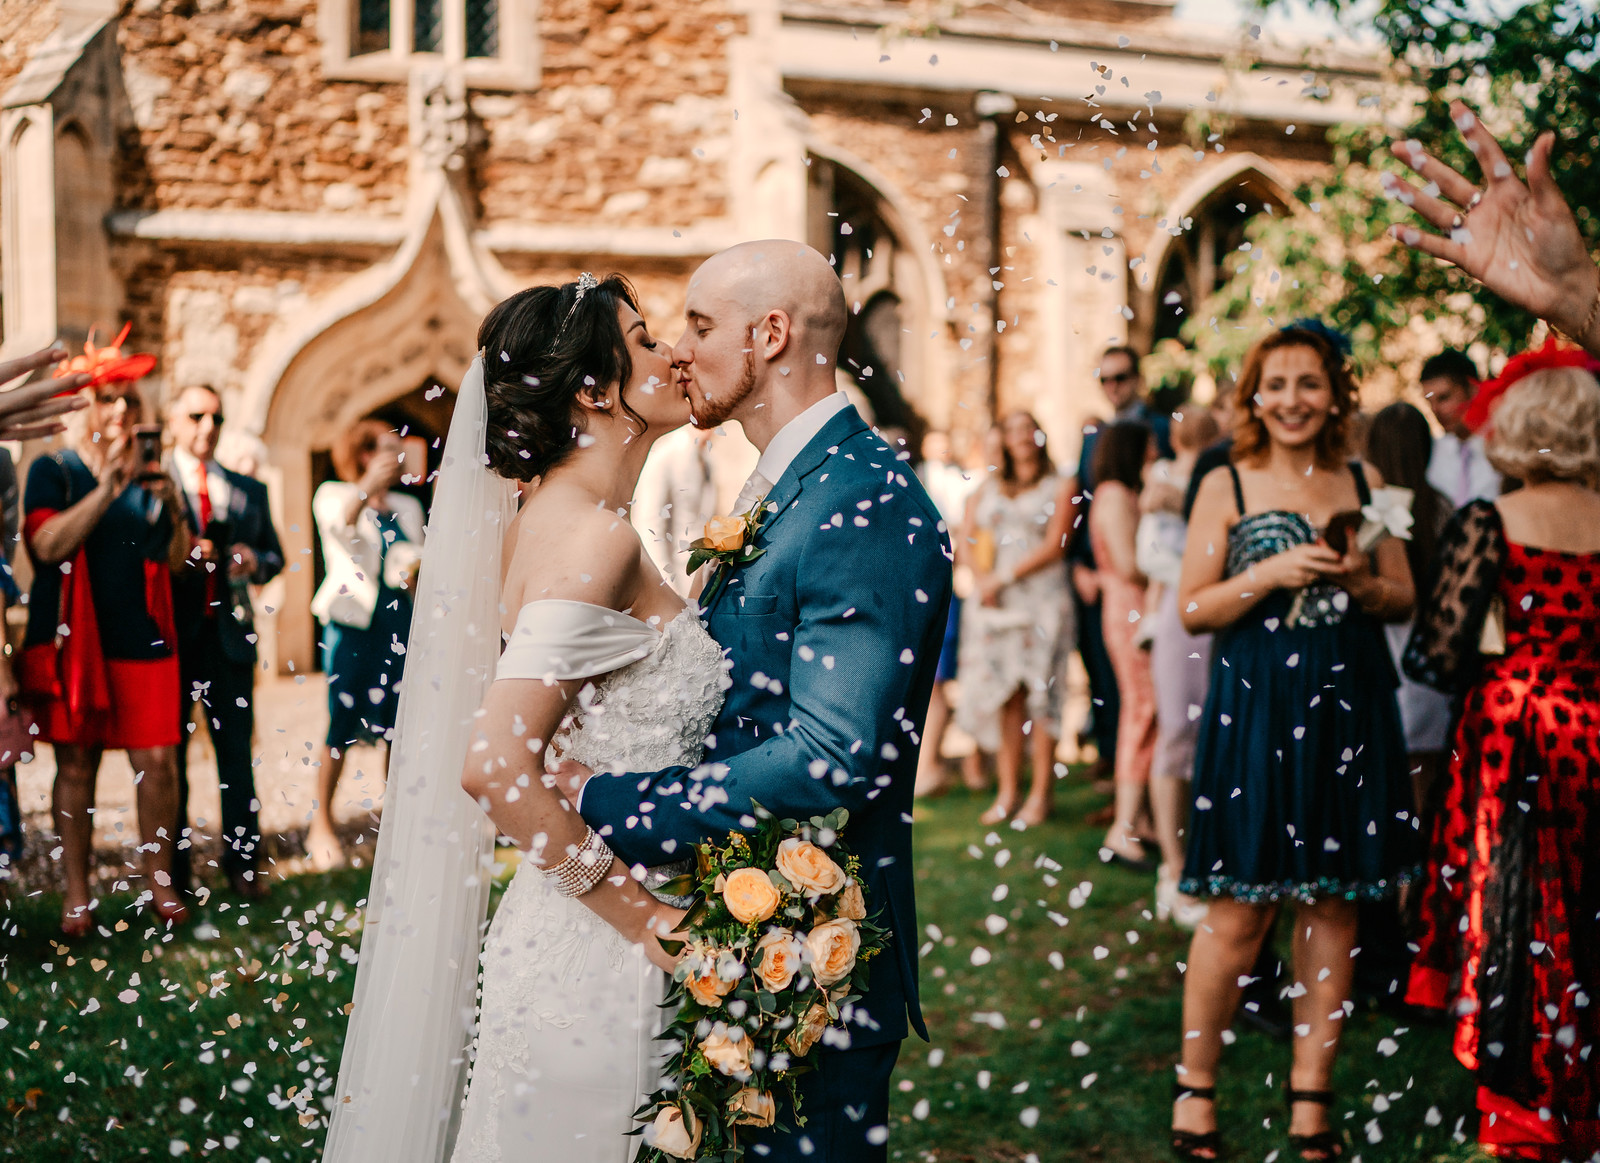 Bride and groom kiss as family and friends throw confetti over the happy couple - Columbia Wedding Photographers